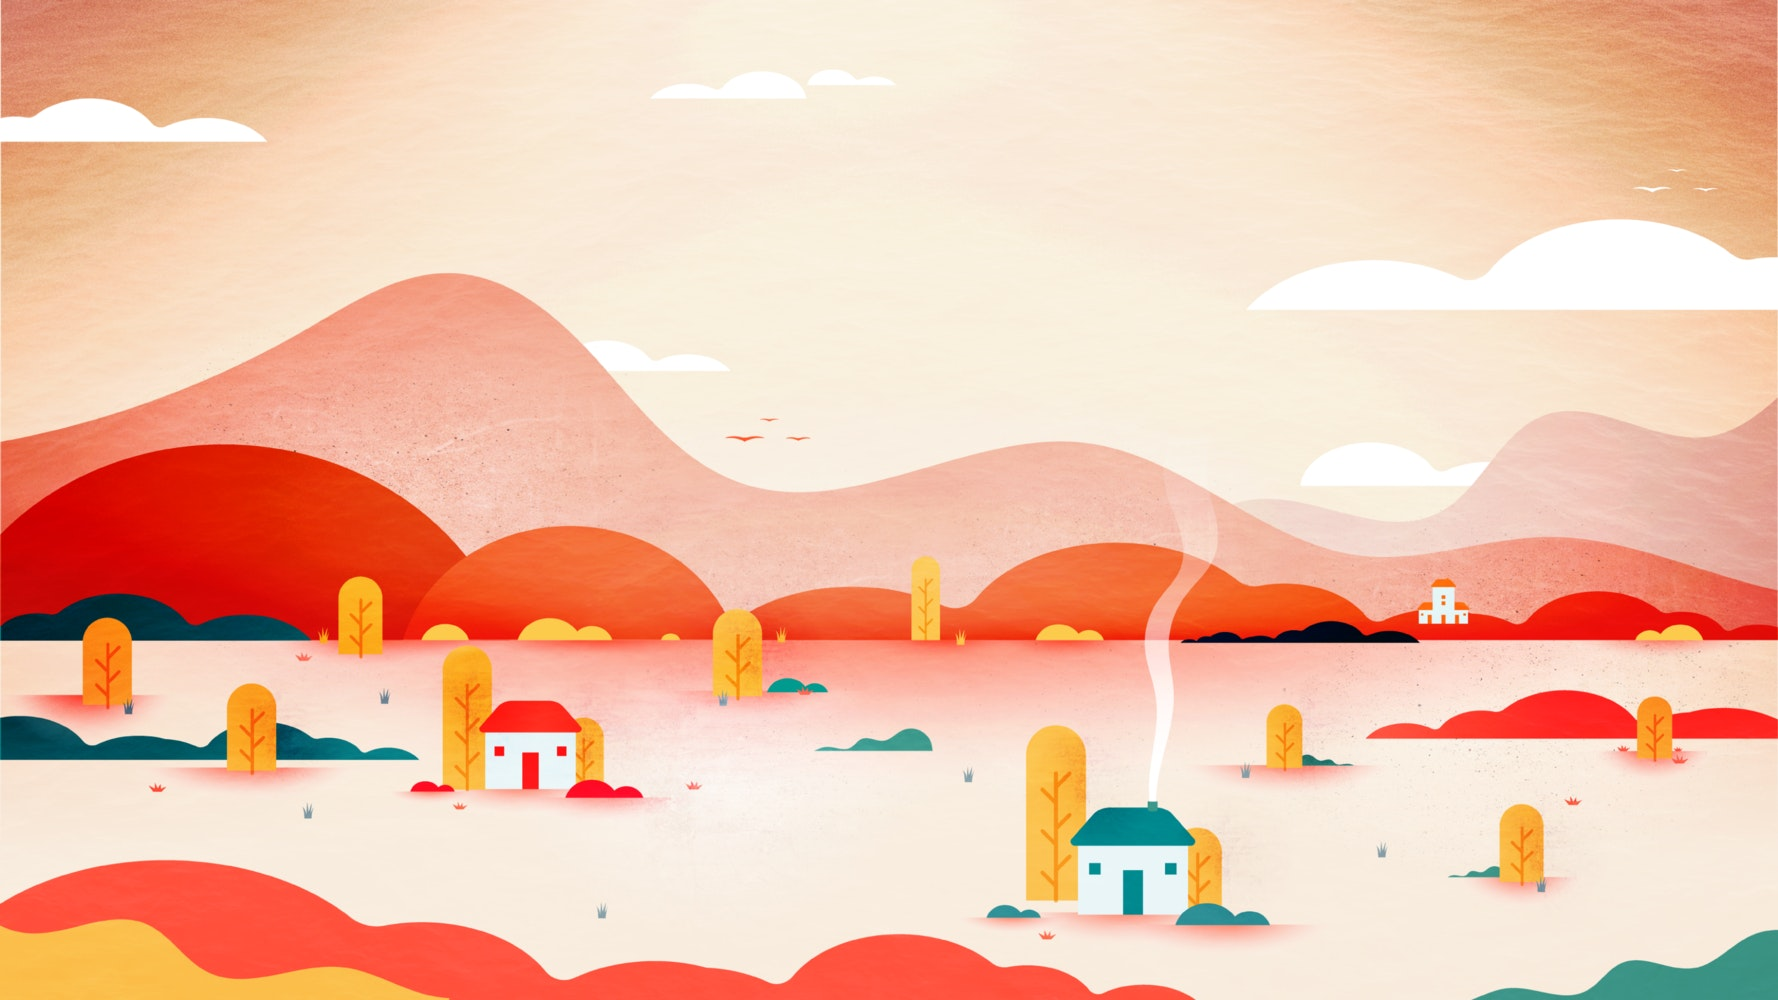 Desert and mountain landscape dotted with houses and cactus